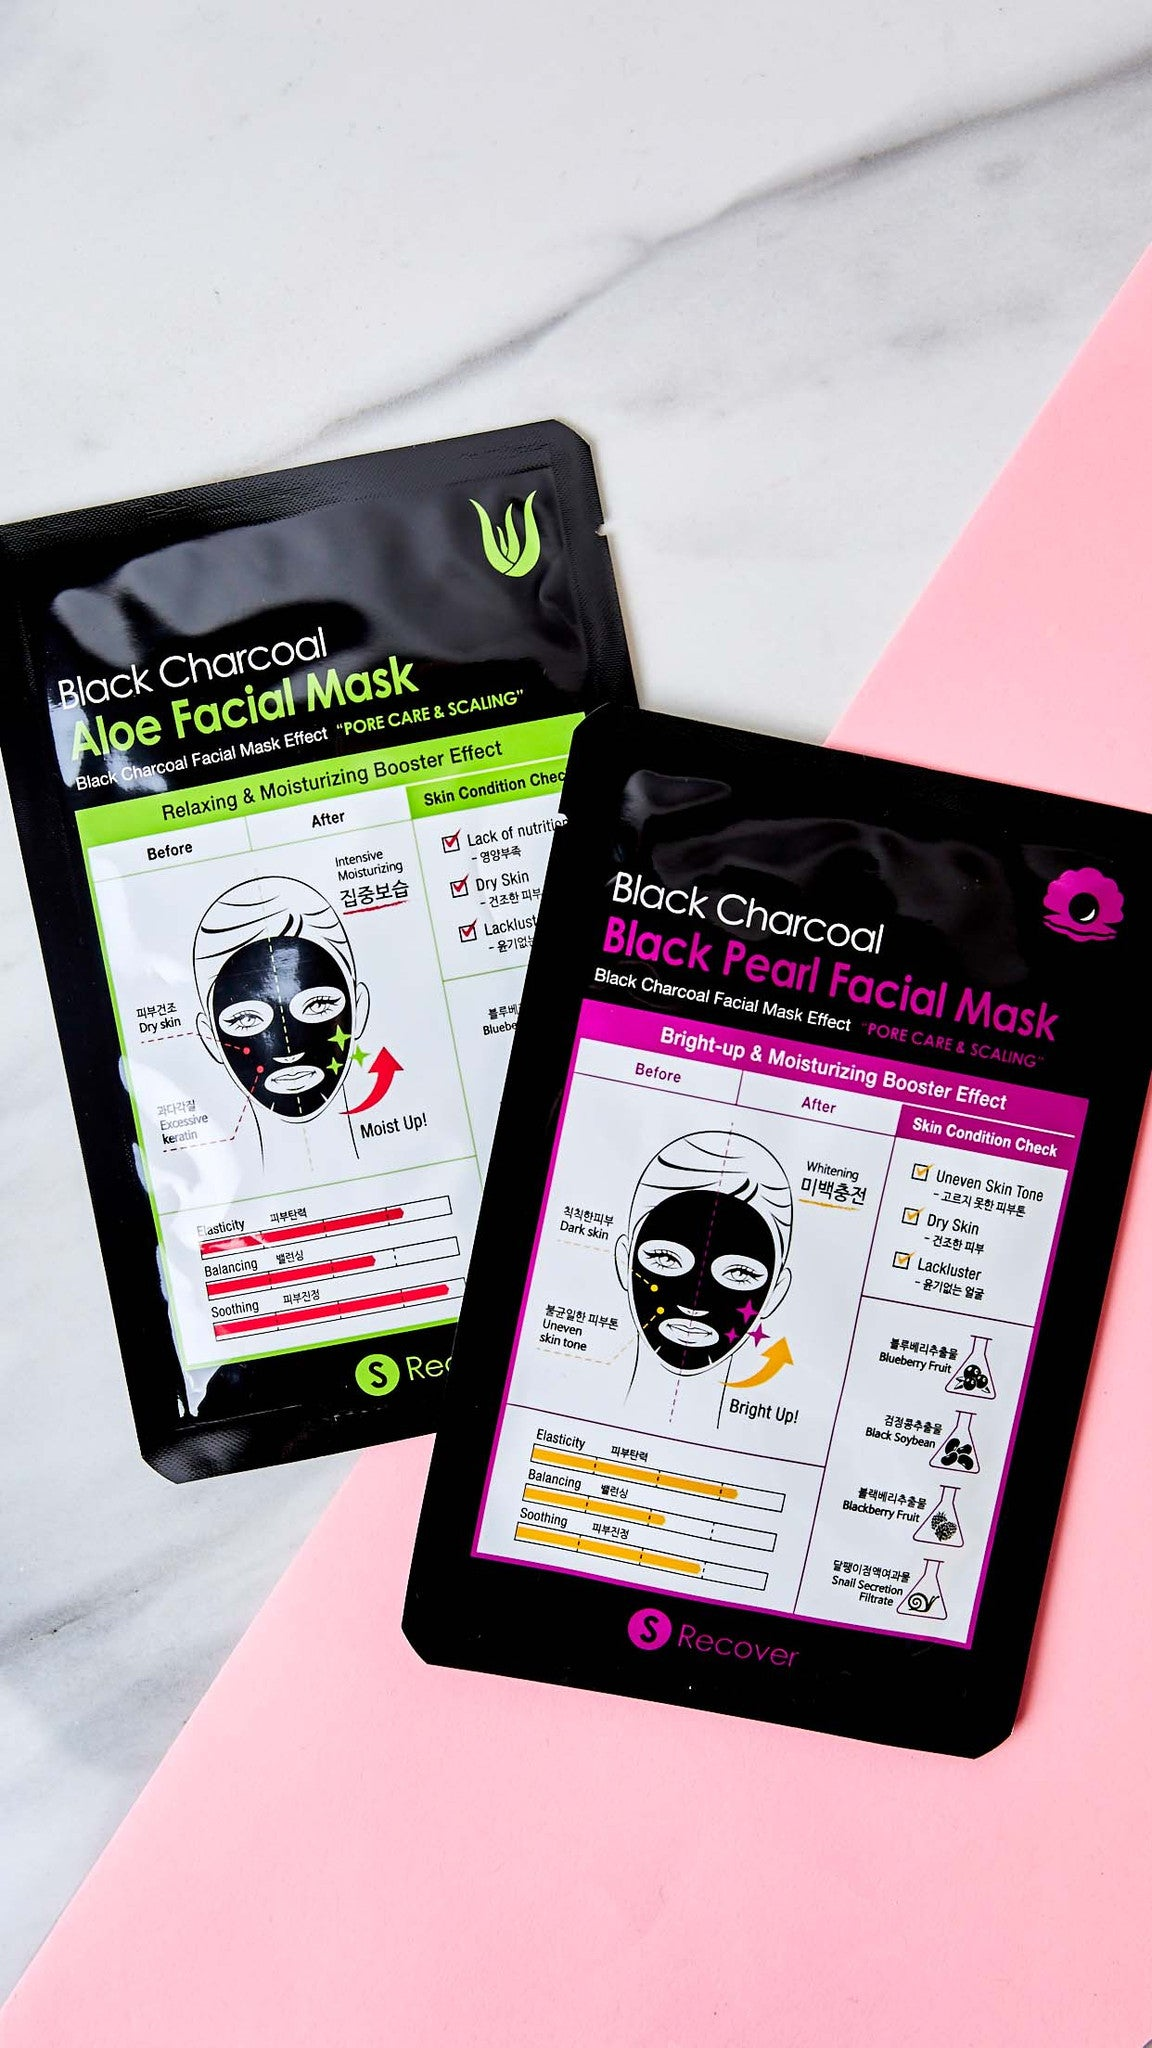 Black Charcoal Facial Mask